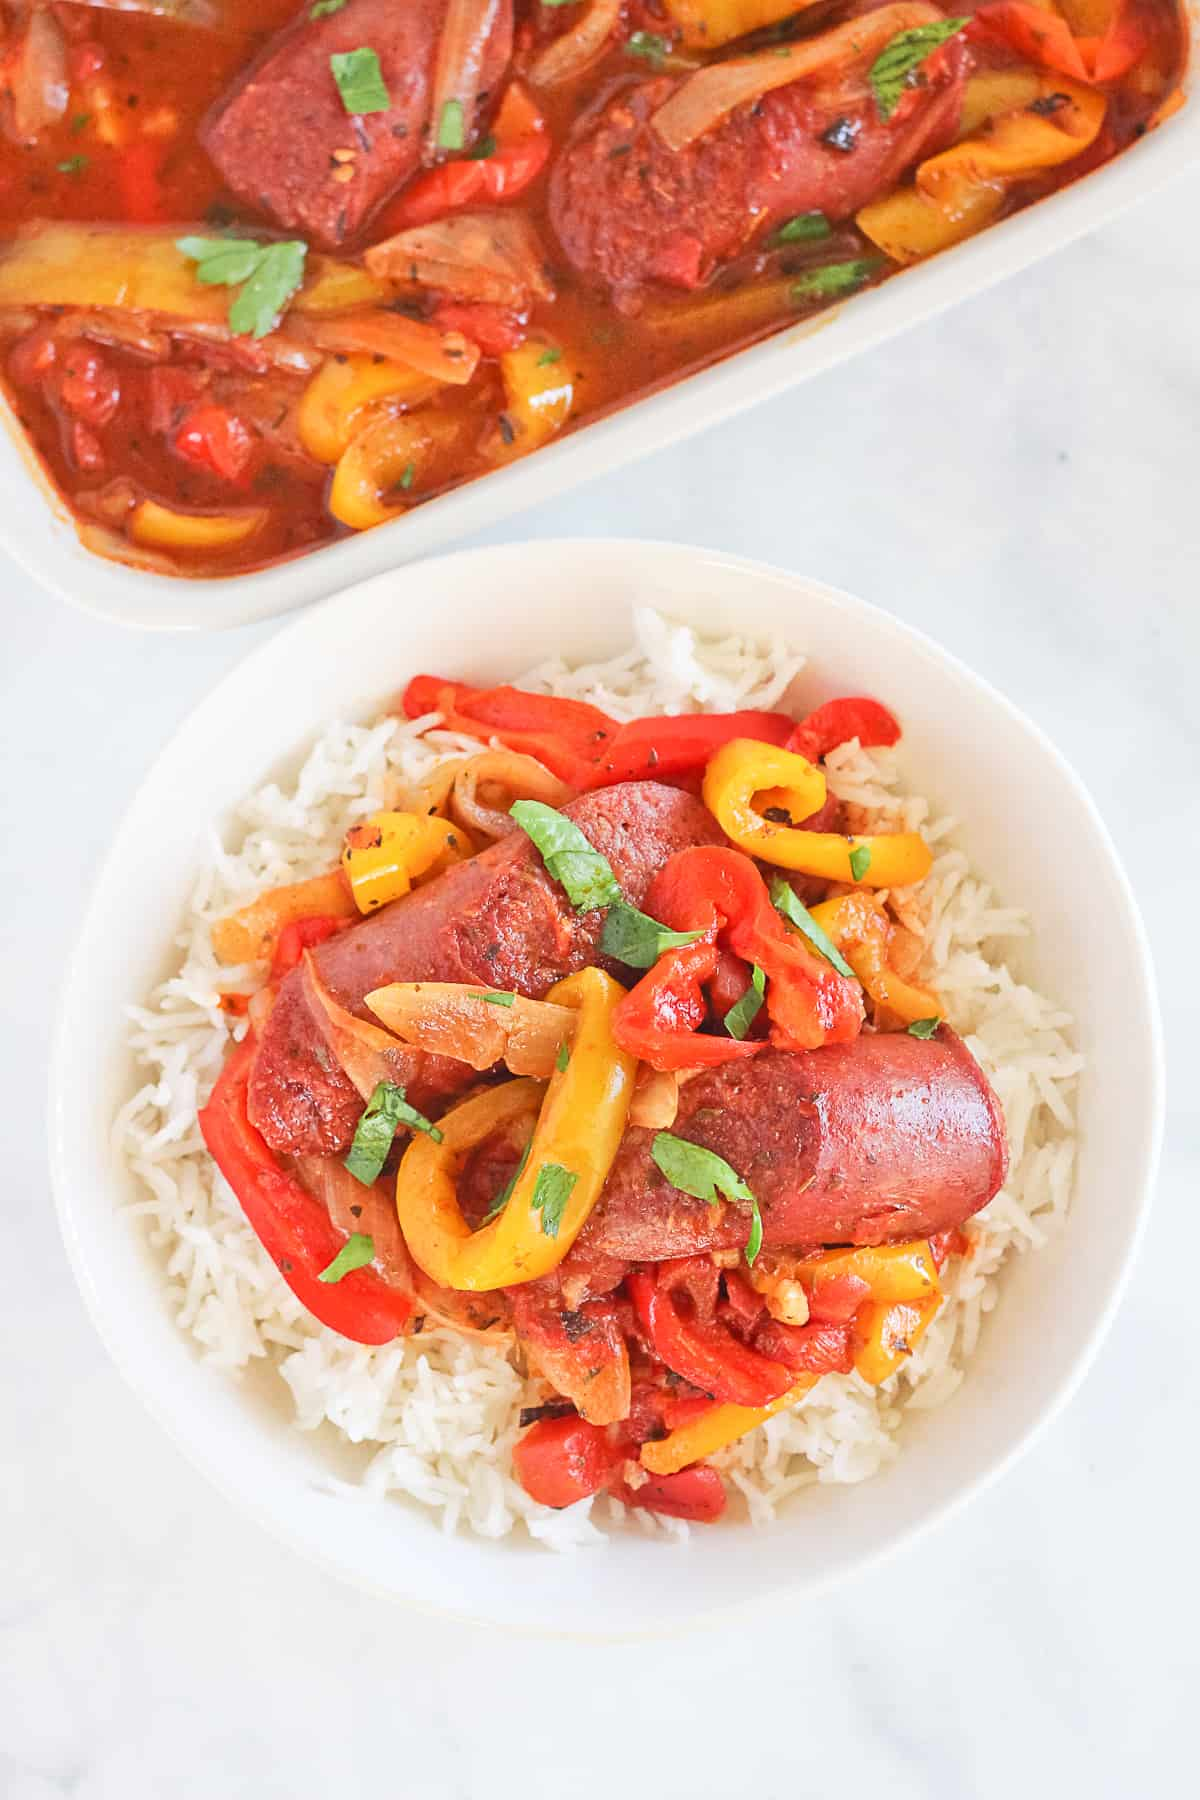 Sausage and peppers over white rice topped with fresh parsely.